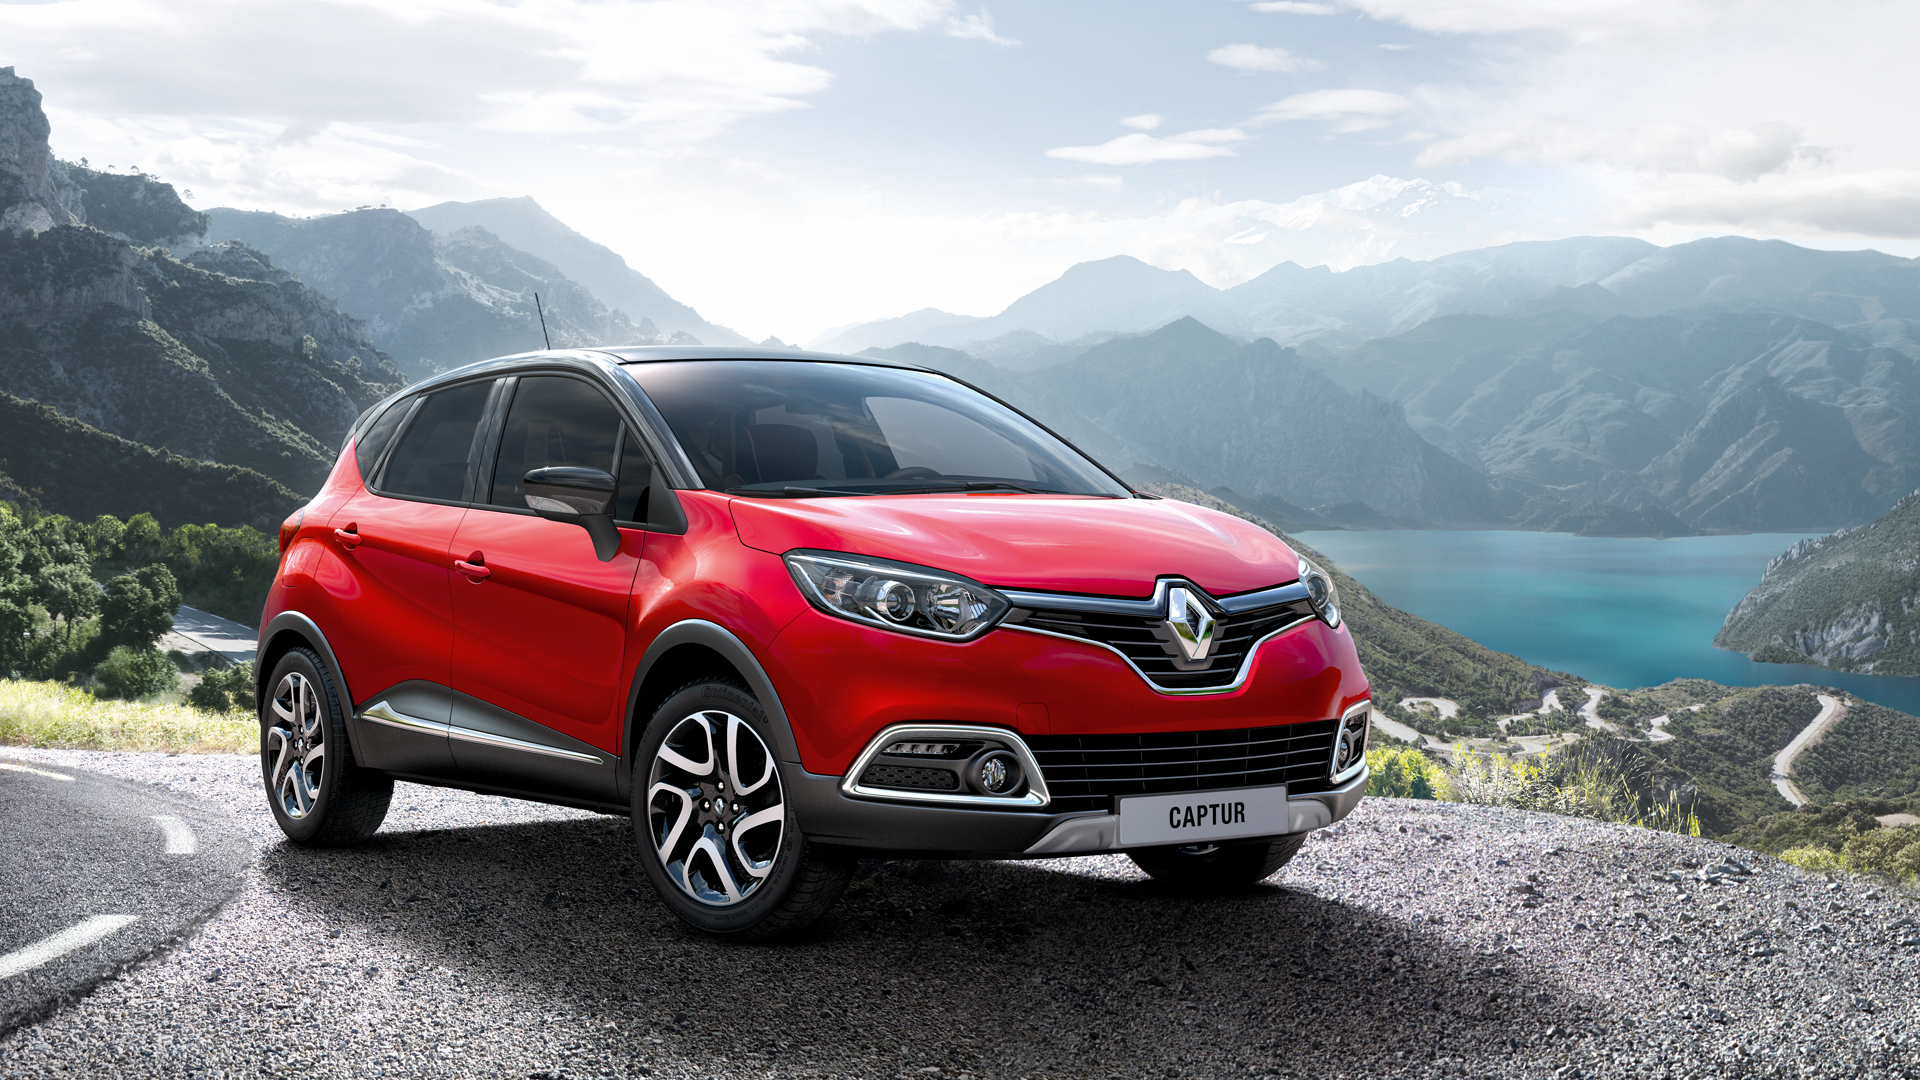 Renault Captur compact-SUV in 2016